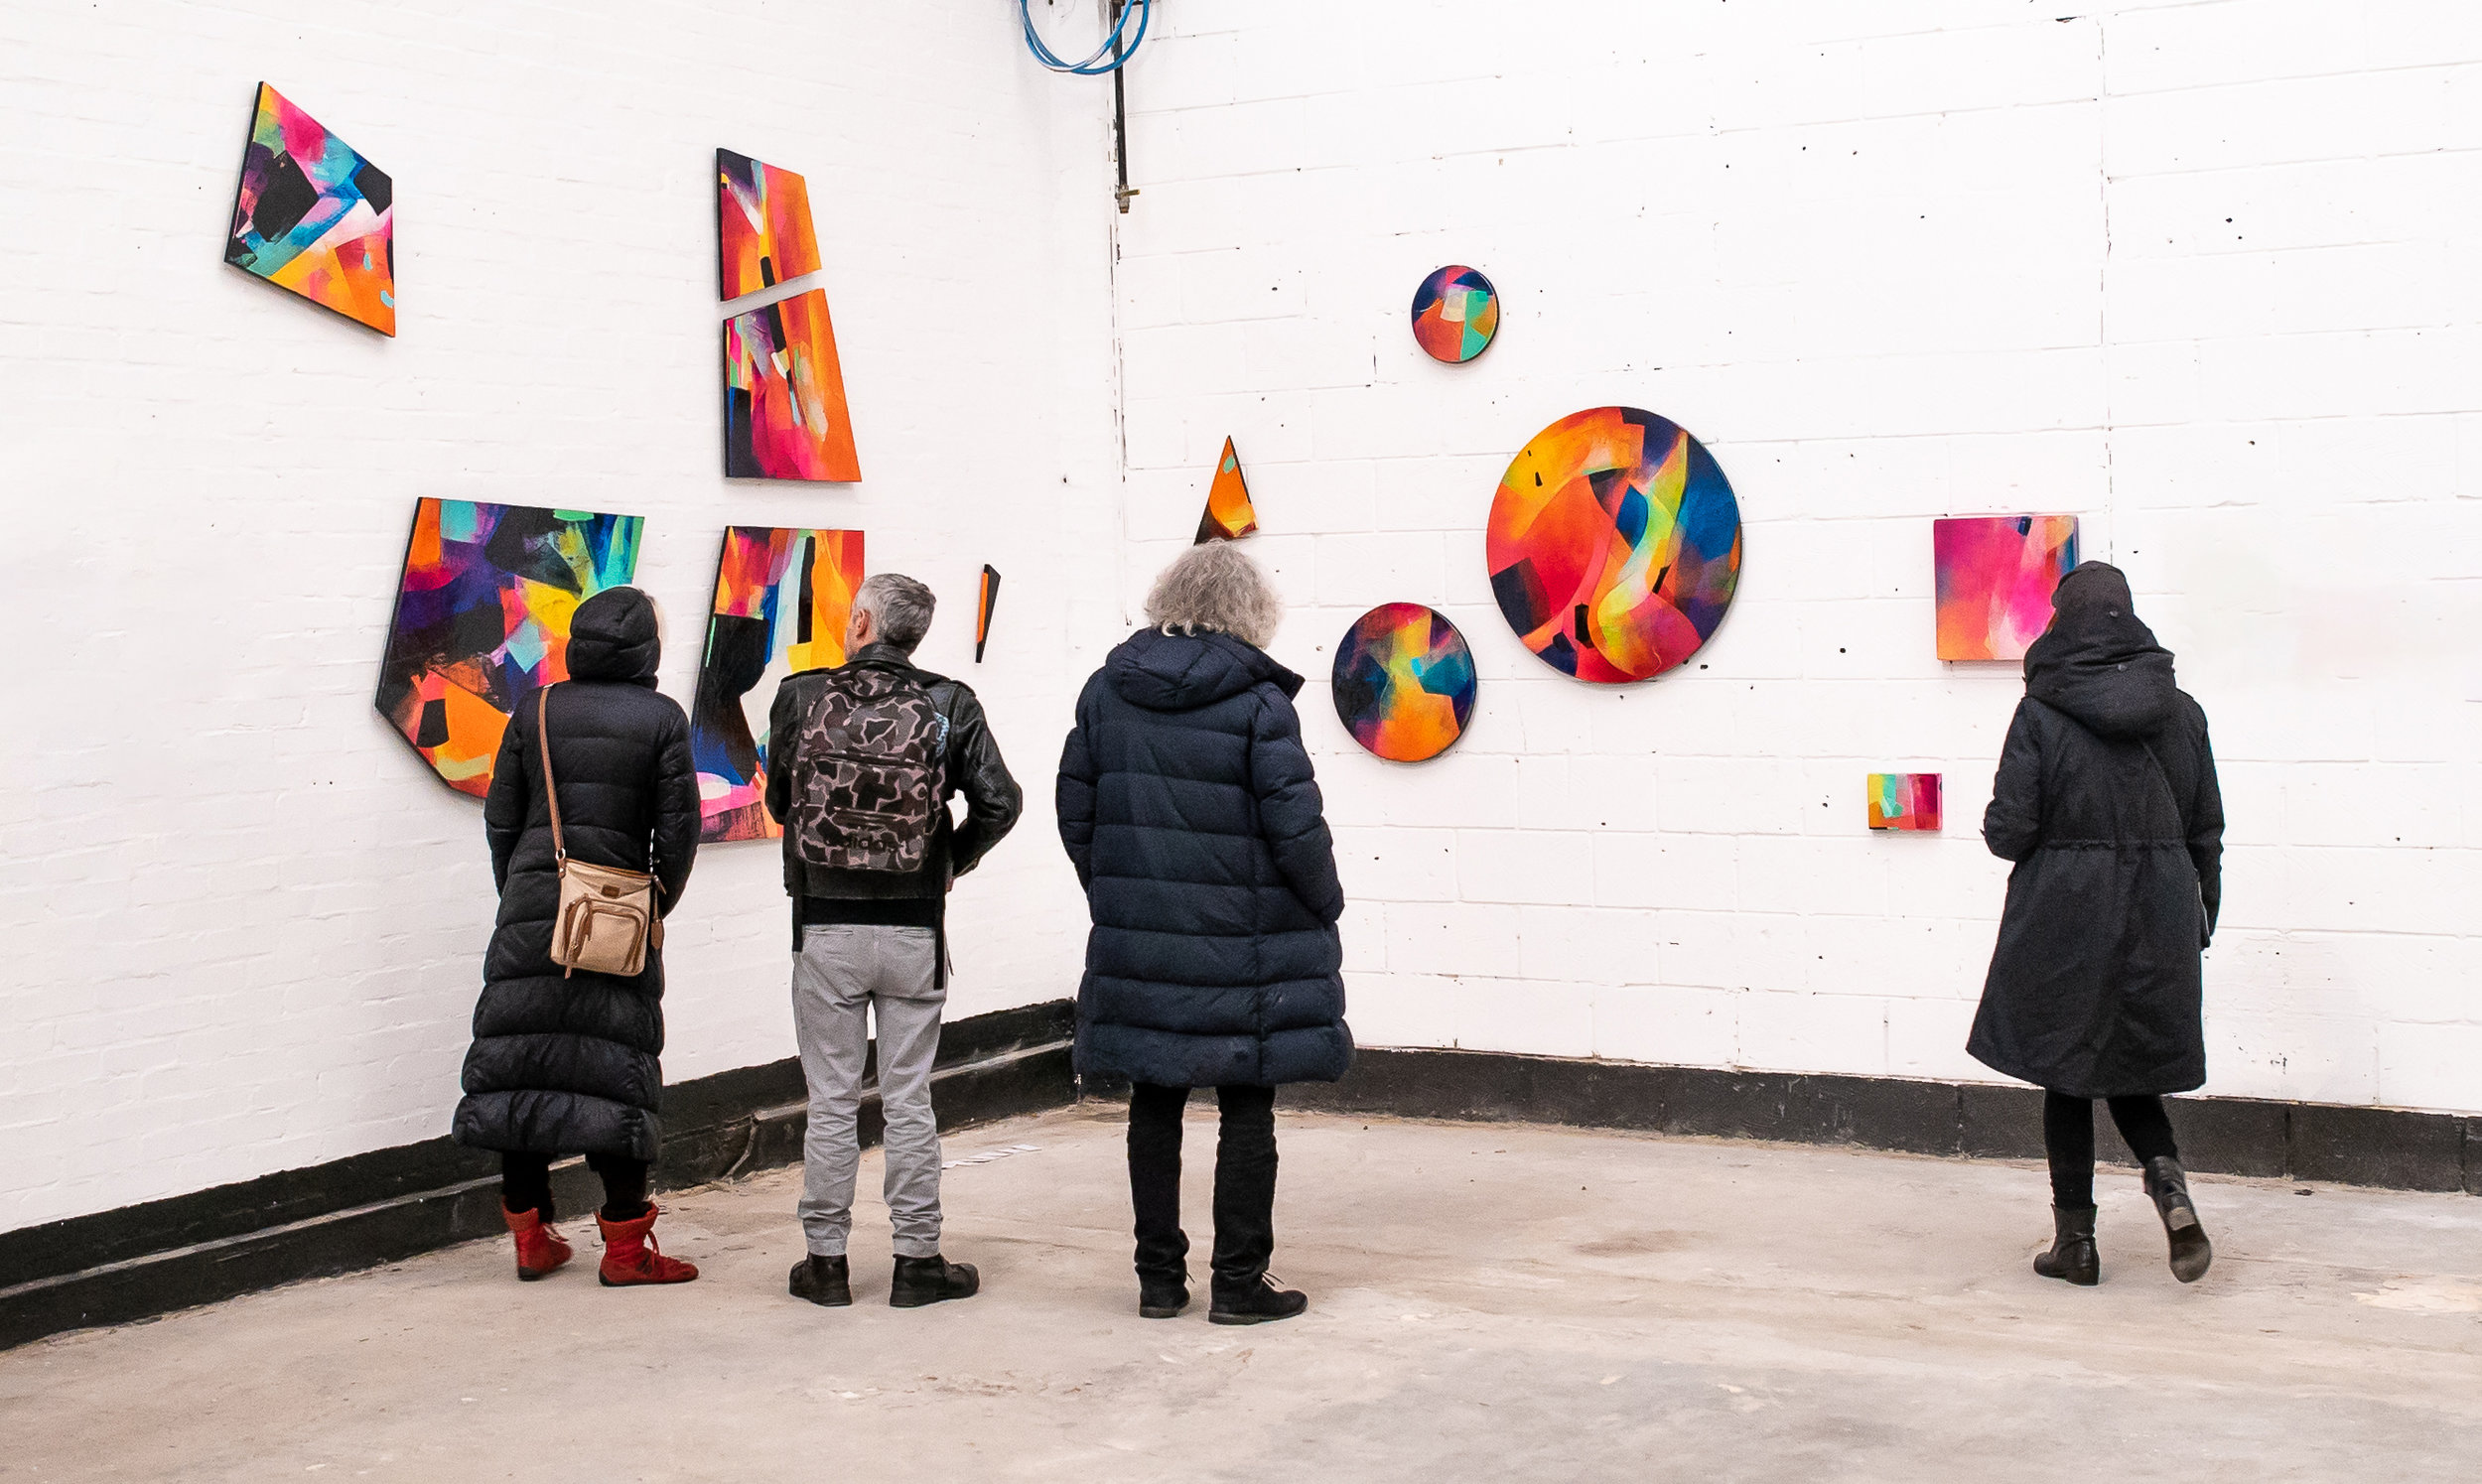 Installation at How do you see, What do you feel? Exhibition. Arena Design Centre, London, 2019 (Photo: @dcostafilms)